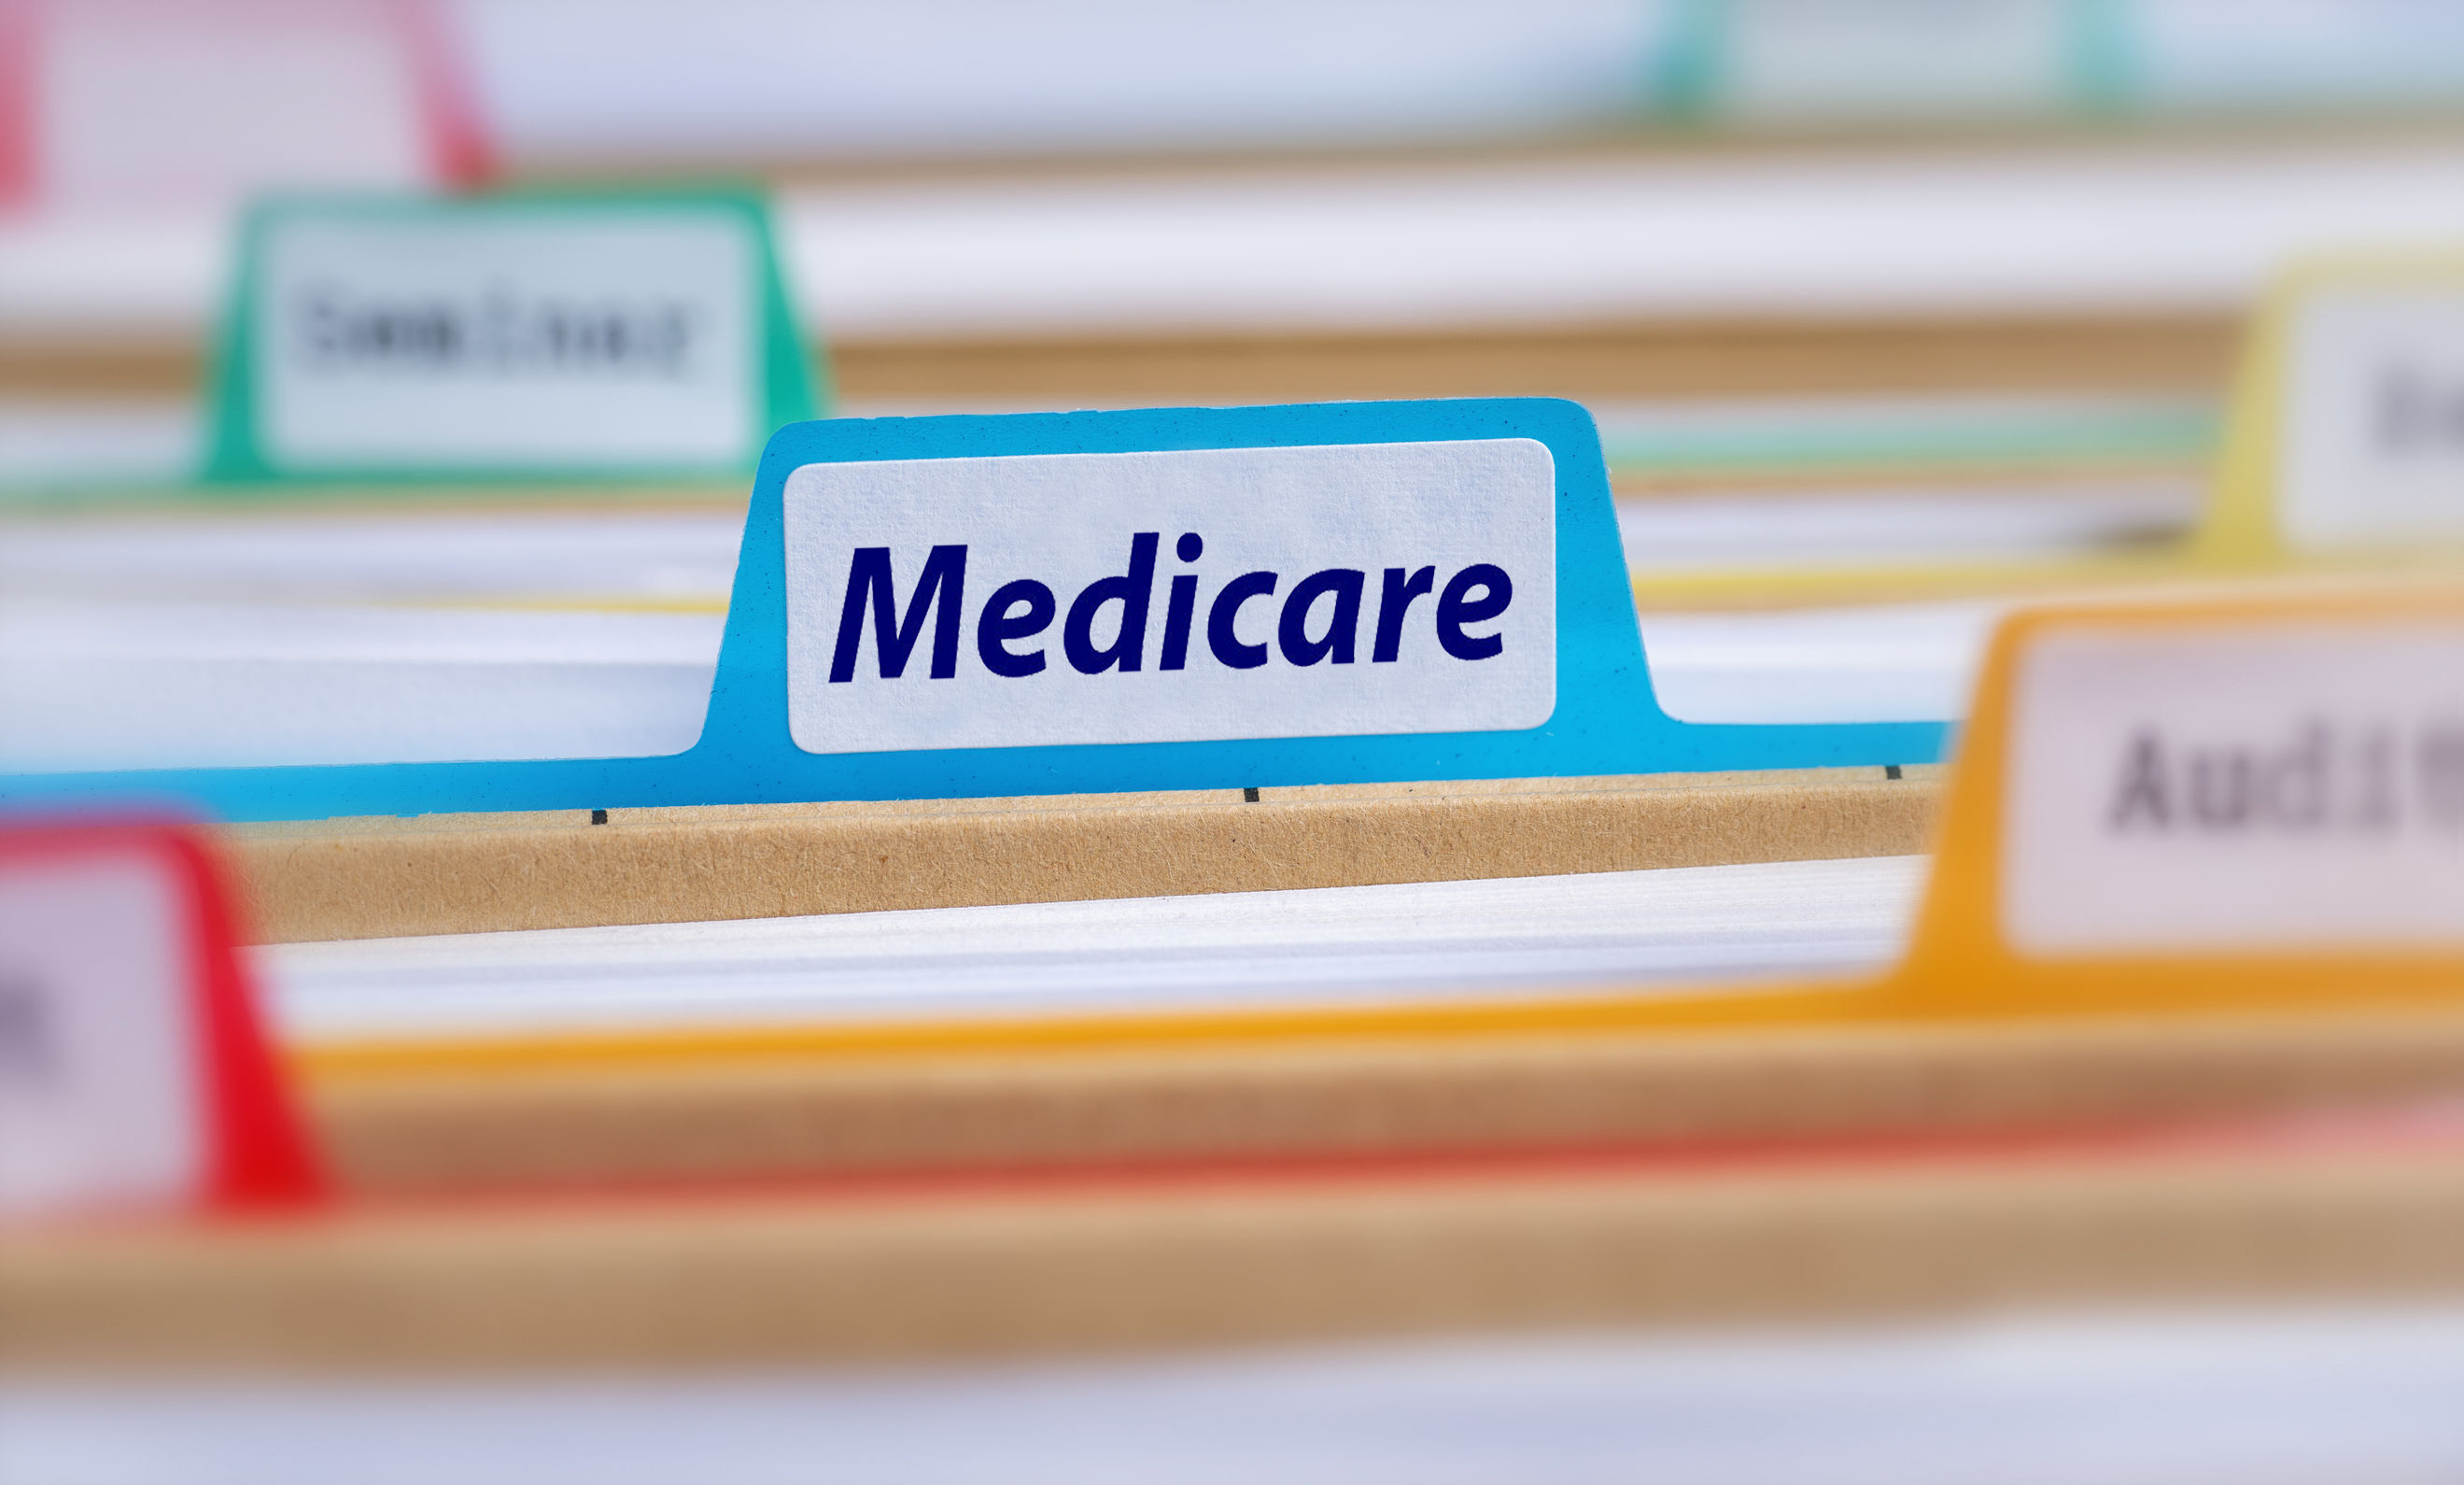 CMS Announced Changes to Medicare Advantage and Part D